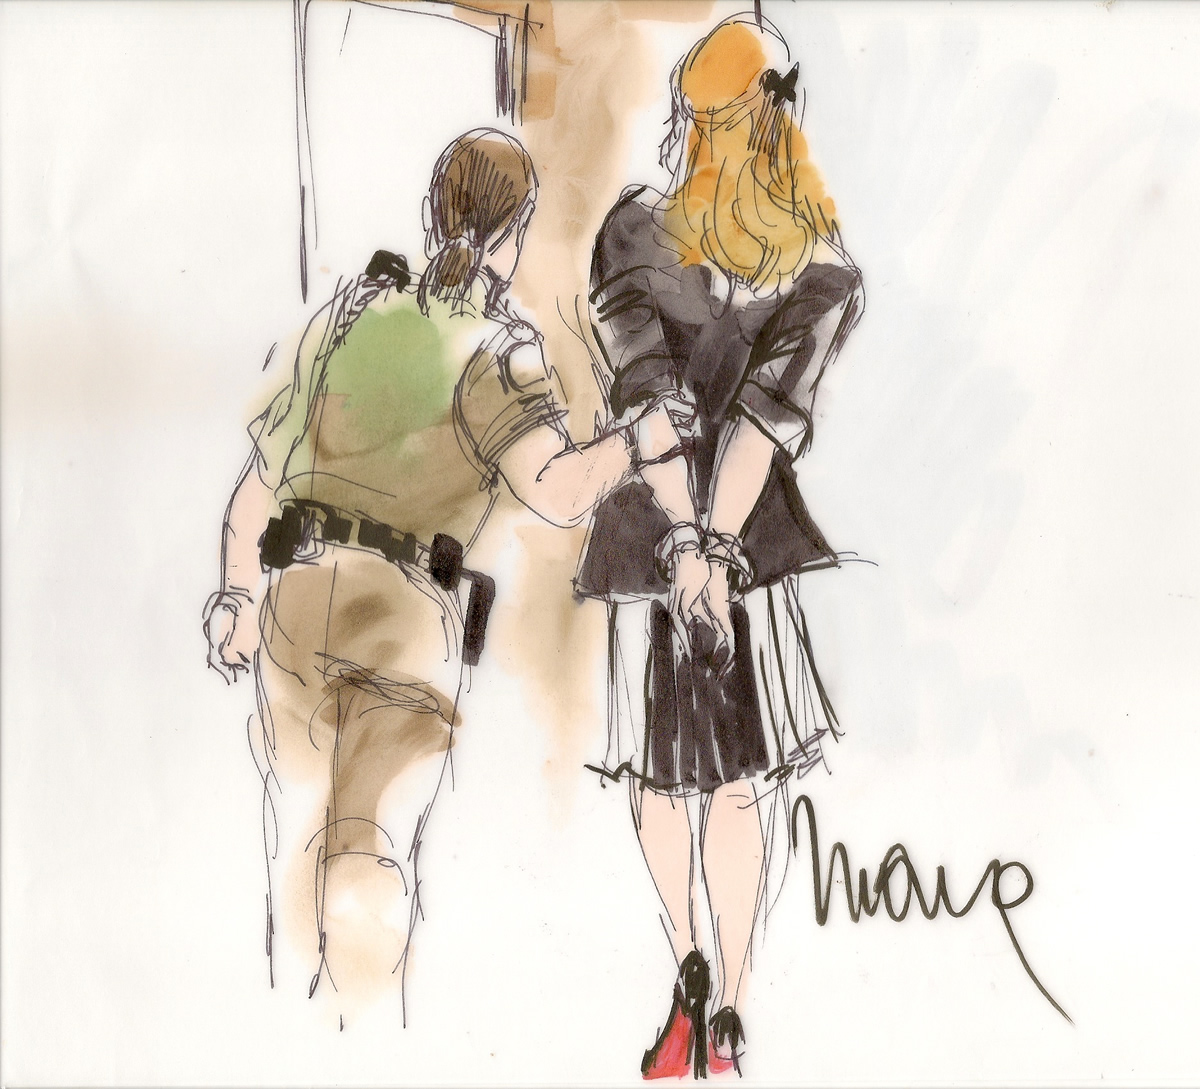 Lindsay Lohan Drunk Driving Courtroom Illustration, Louboutin